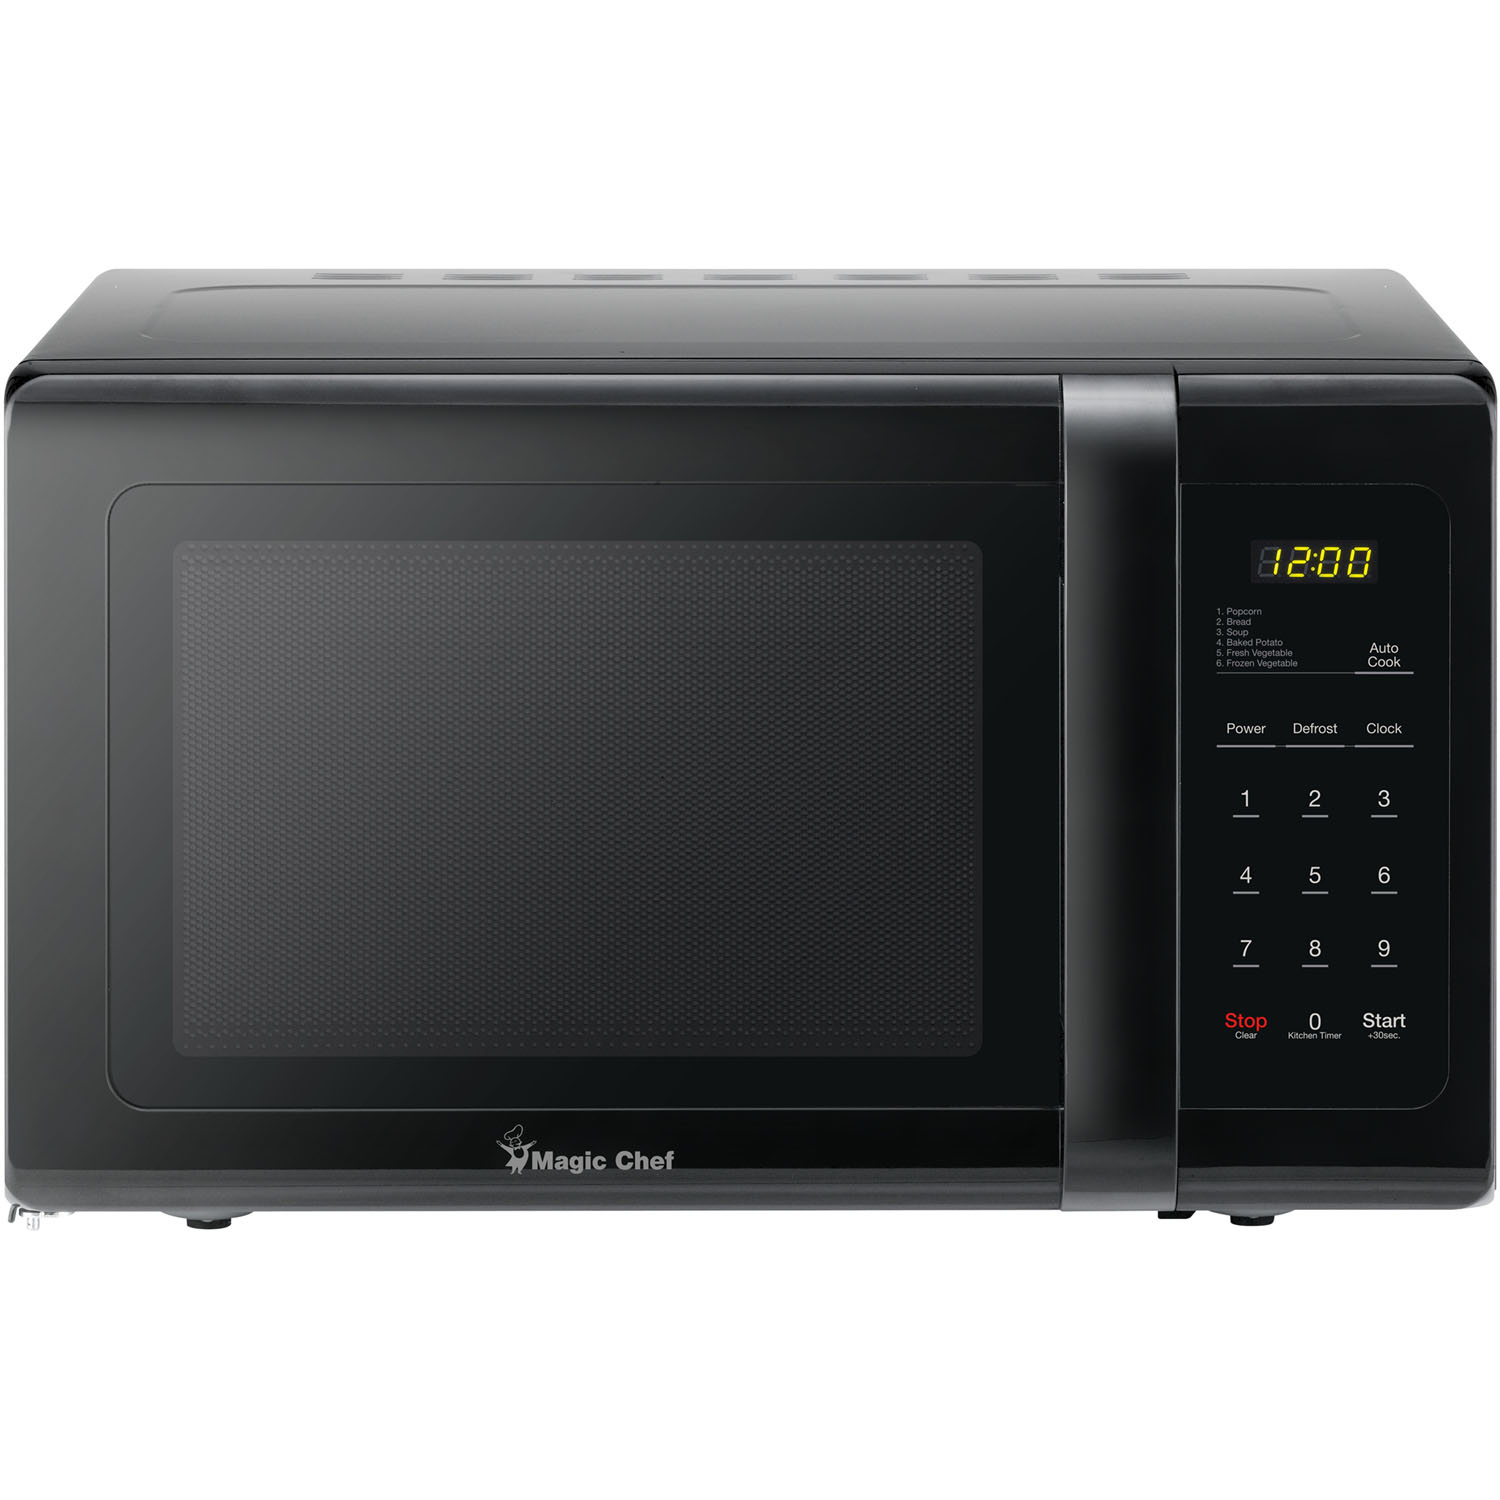 Magic Chef 0.9 Cu. Ft. 900W Countertop Microwave Oven in Black